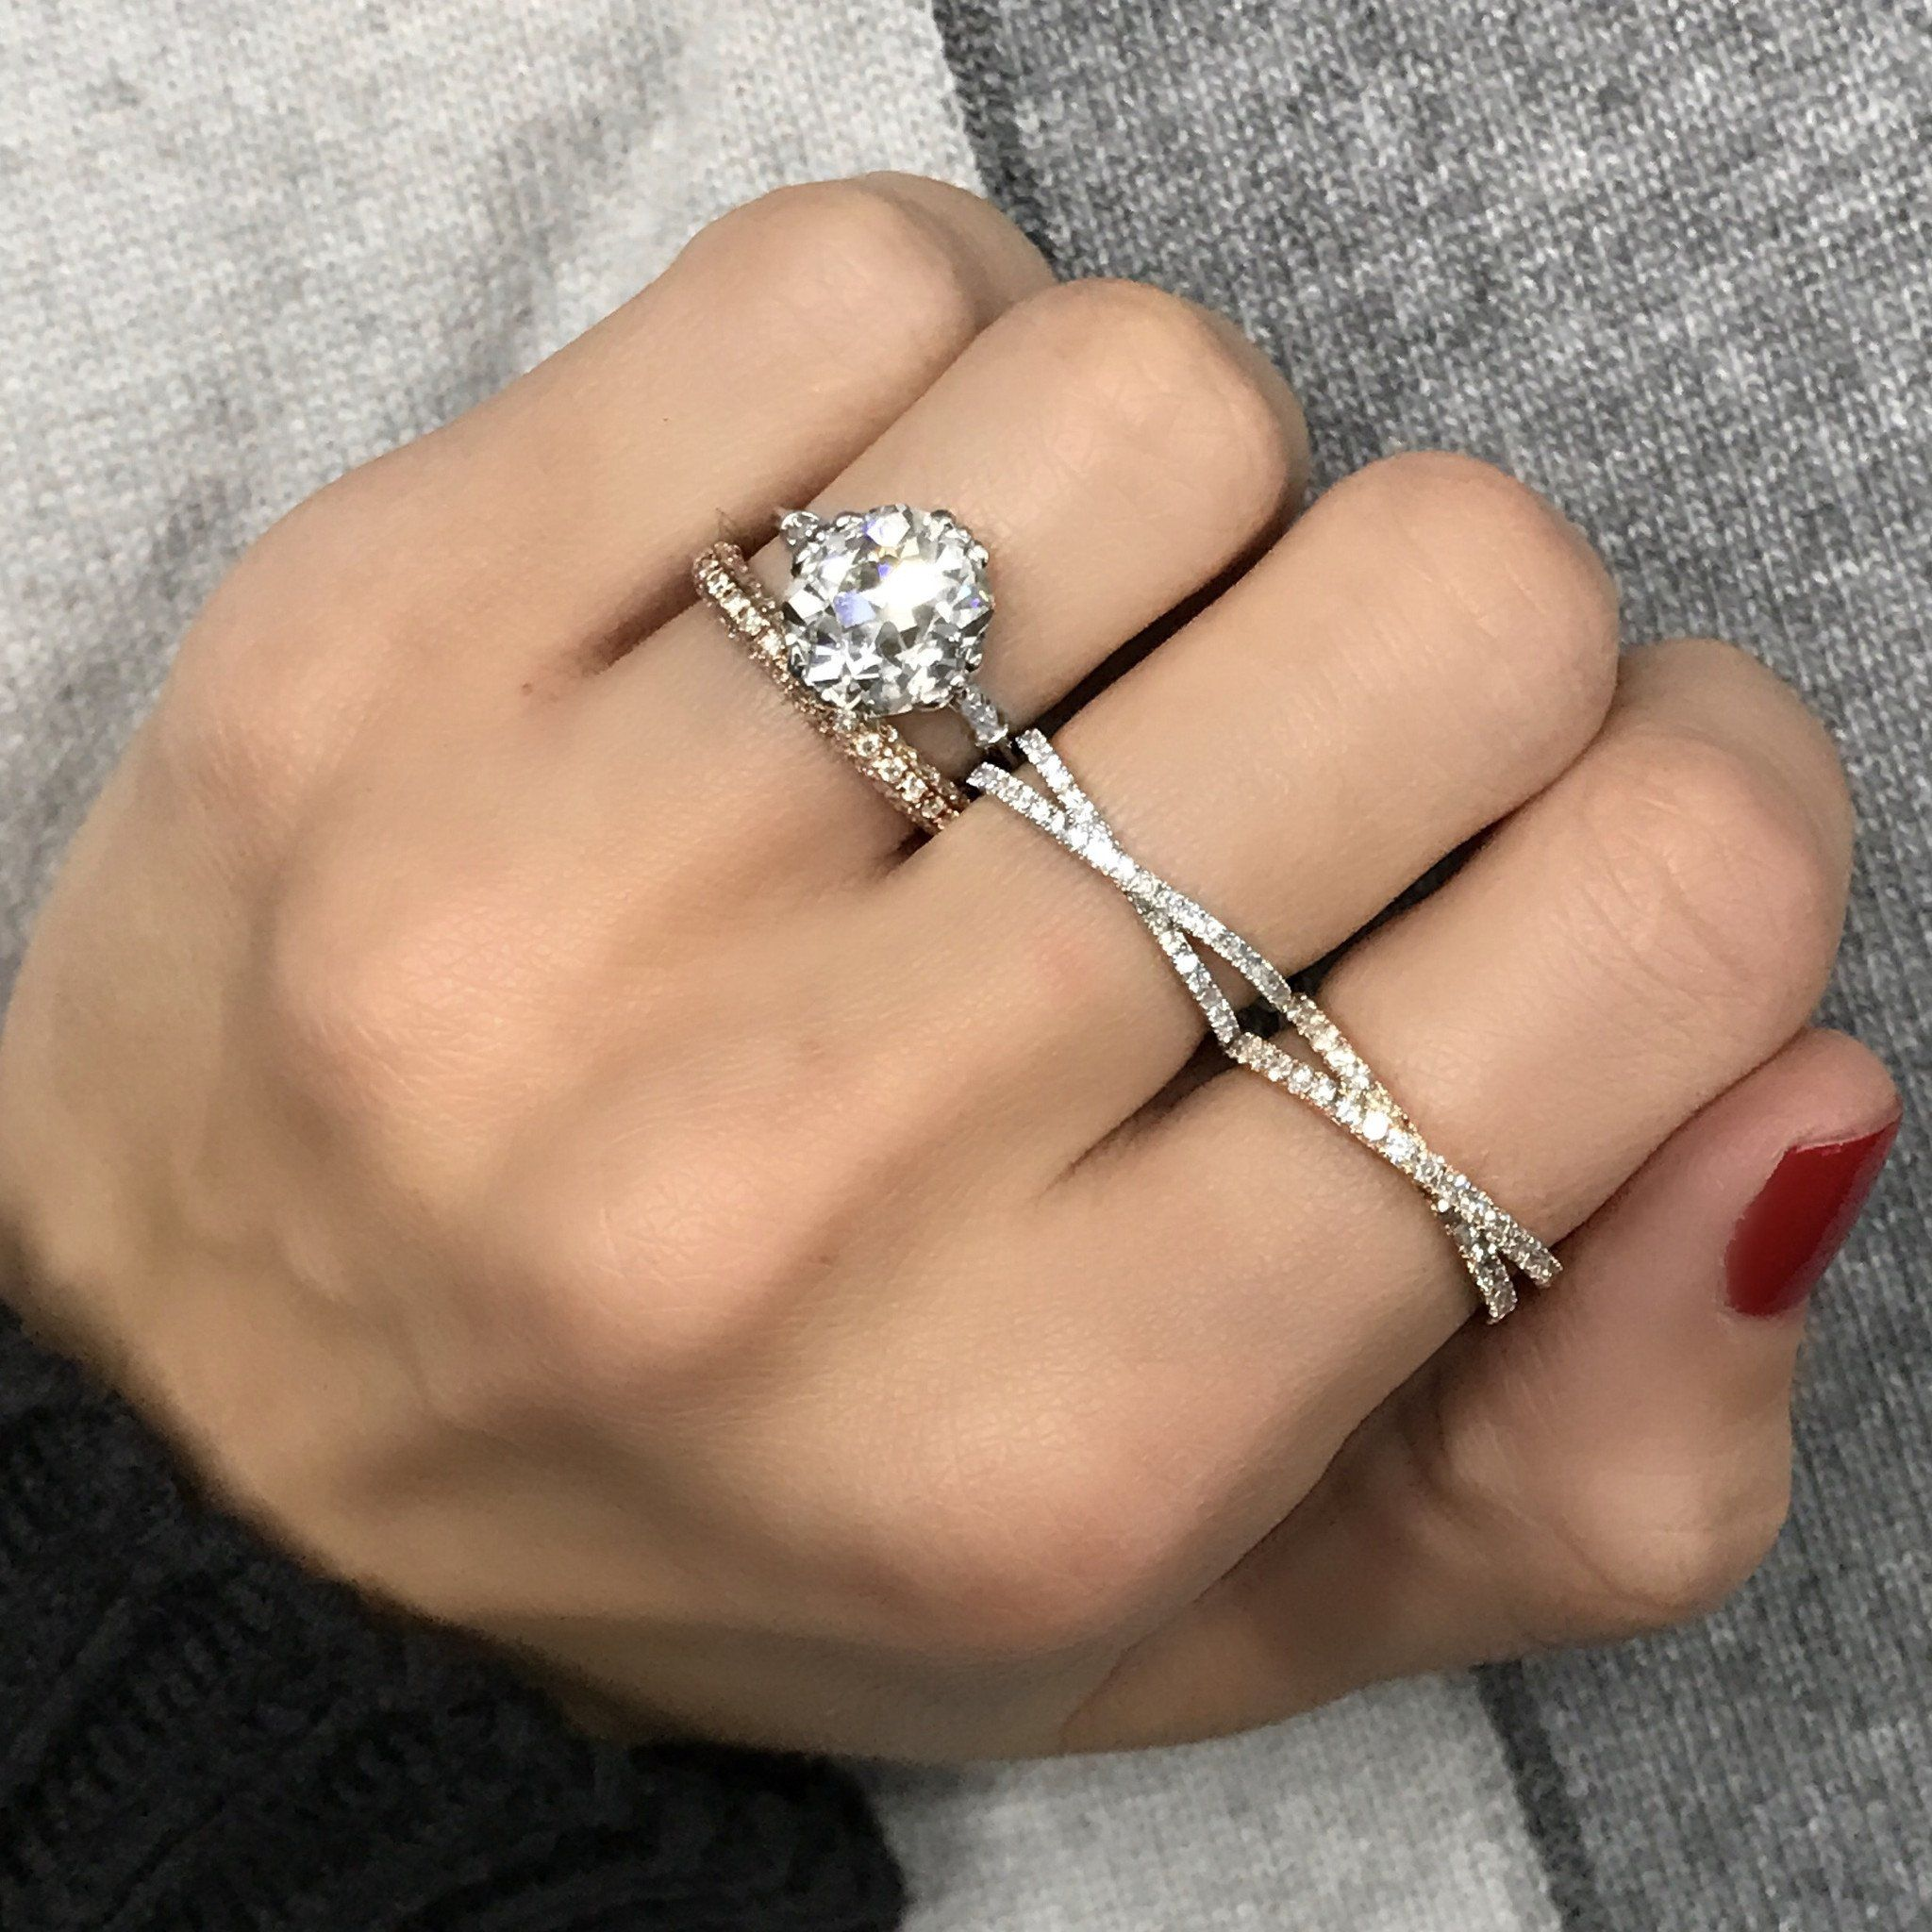 rings cross round vite engagement shop rampicante diamond solitaire category la product bridal wedding shannon fine ring jewelry